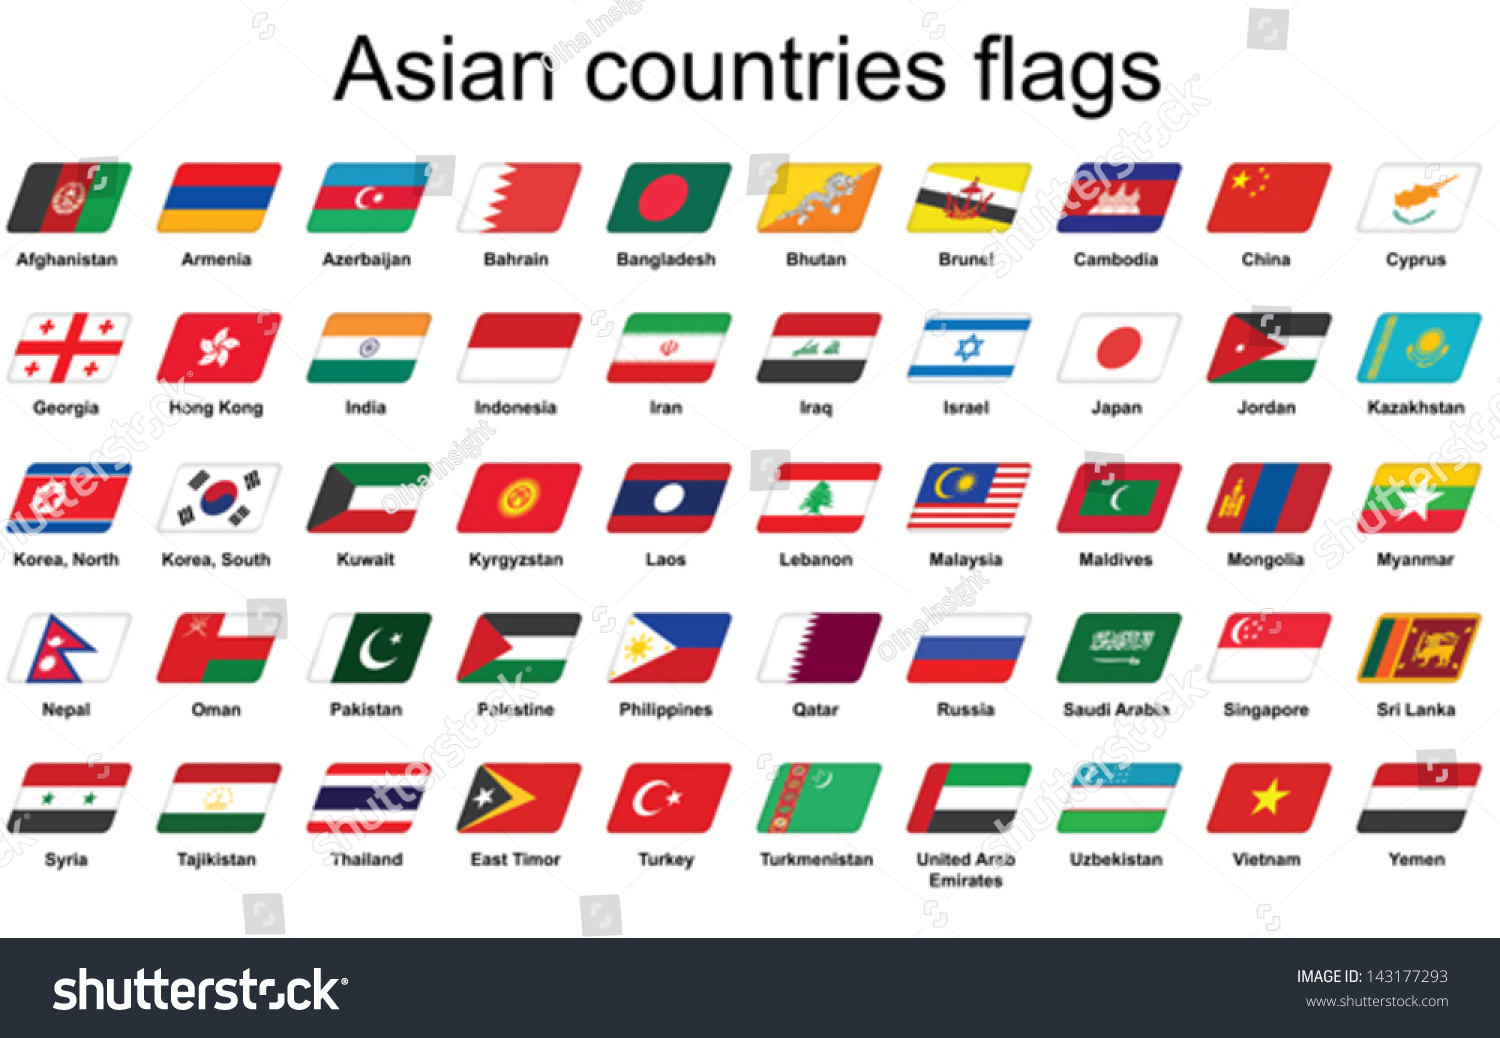 Asian Countries Names List Pictures to Pin on Pinterest ...Flags Of Asia With Names